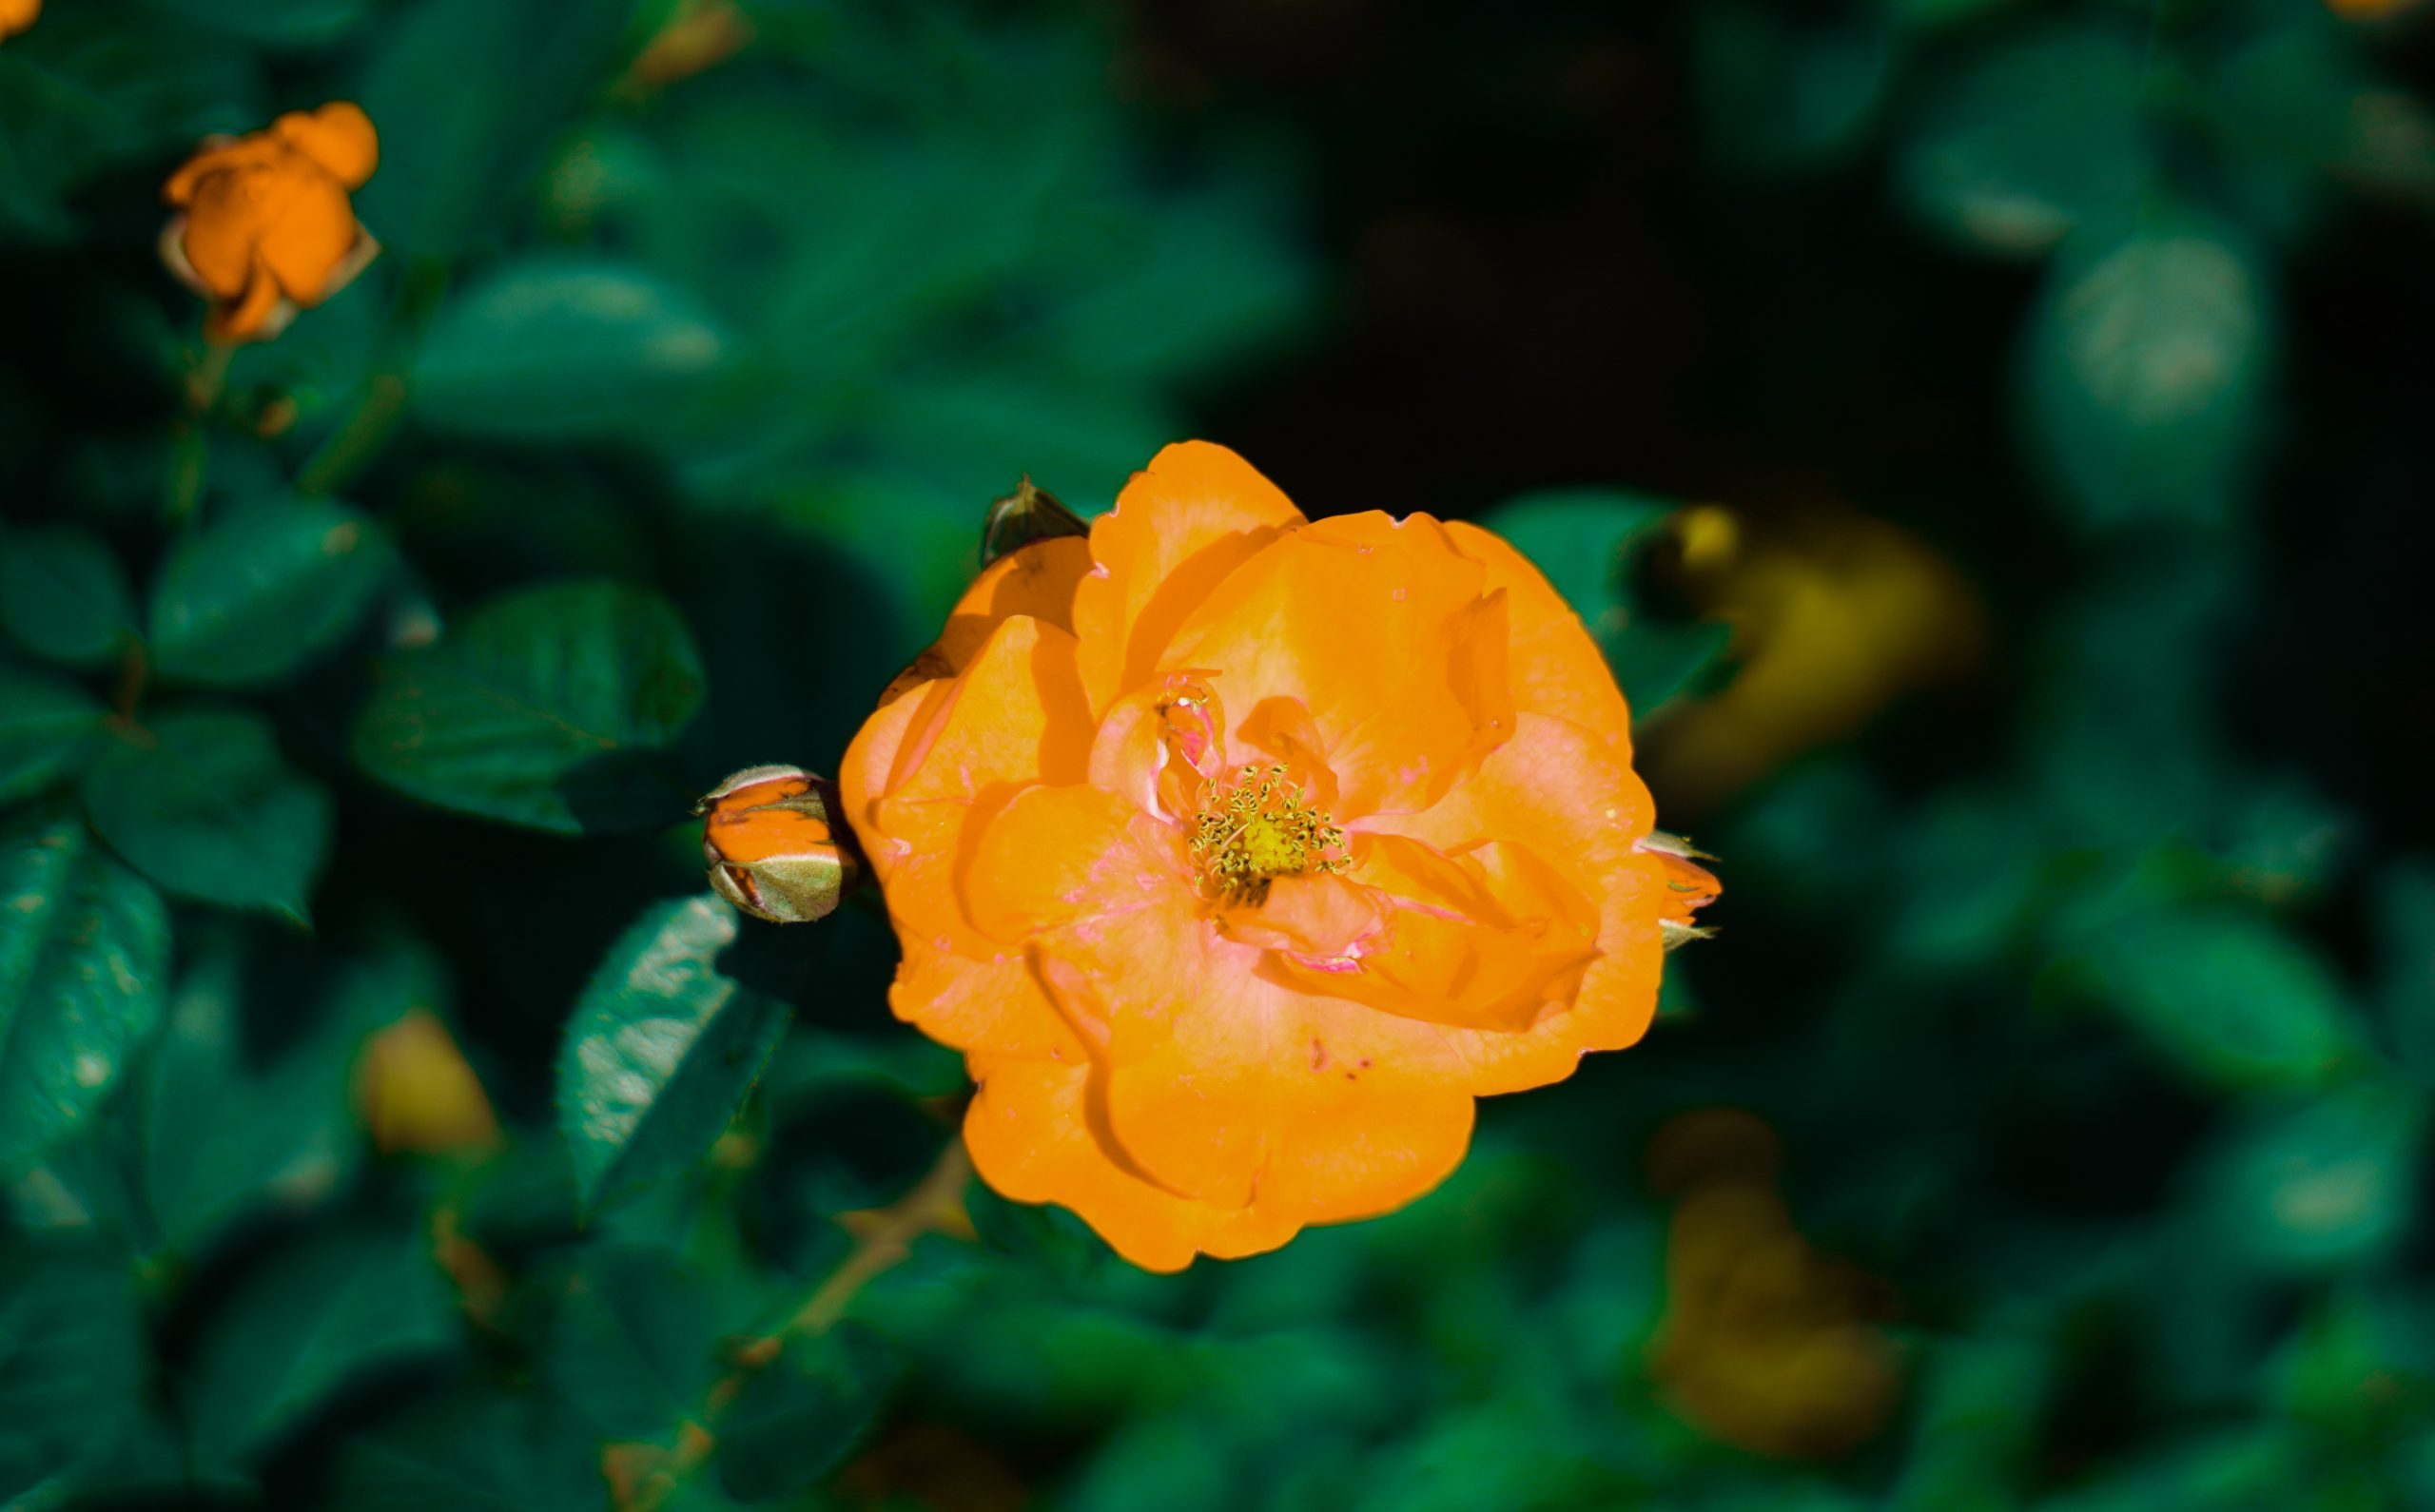 Yellow Rose on the plant